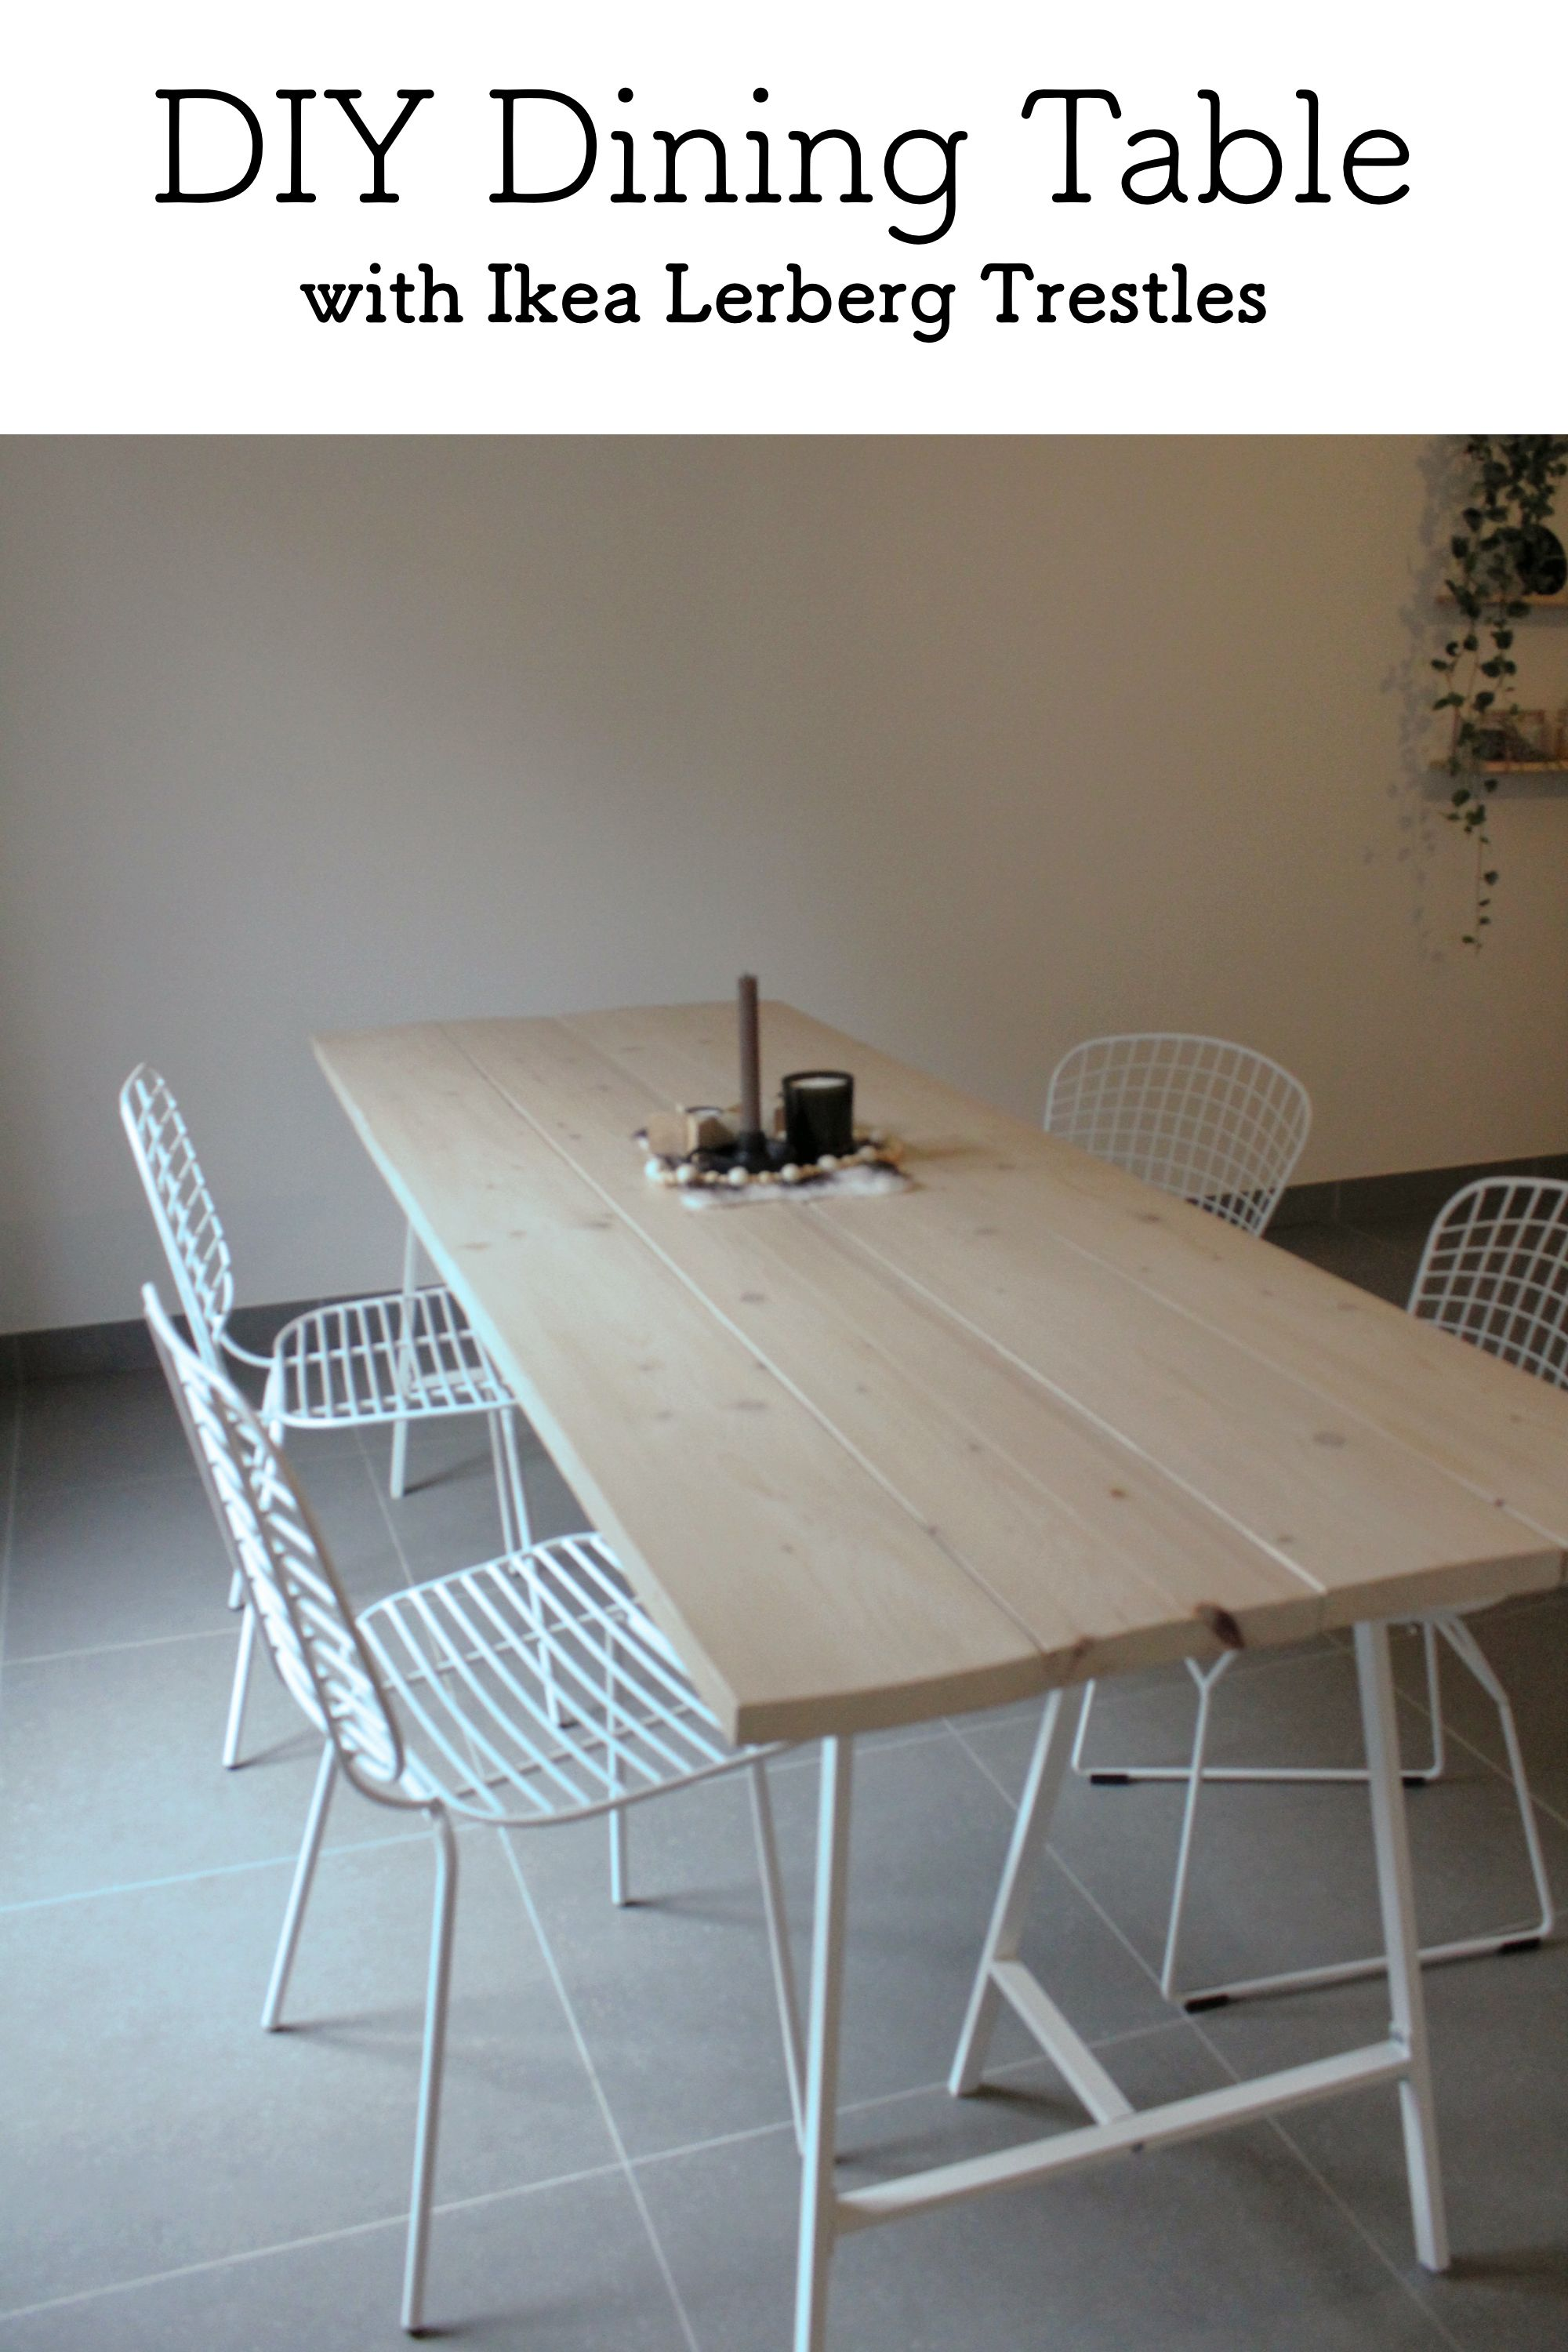 Diy Budget Dining Table With Ikea Lerberg Trestles Budget Dining